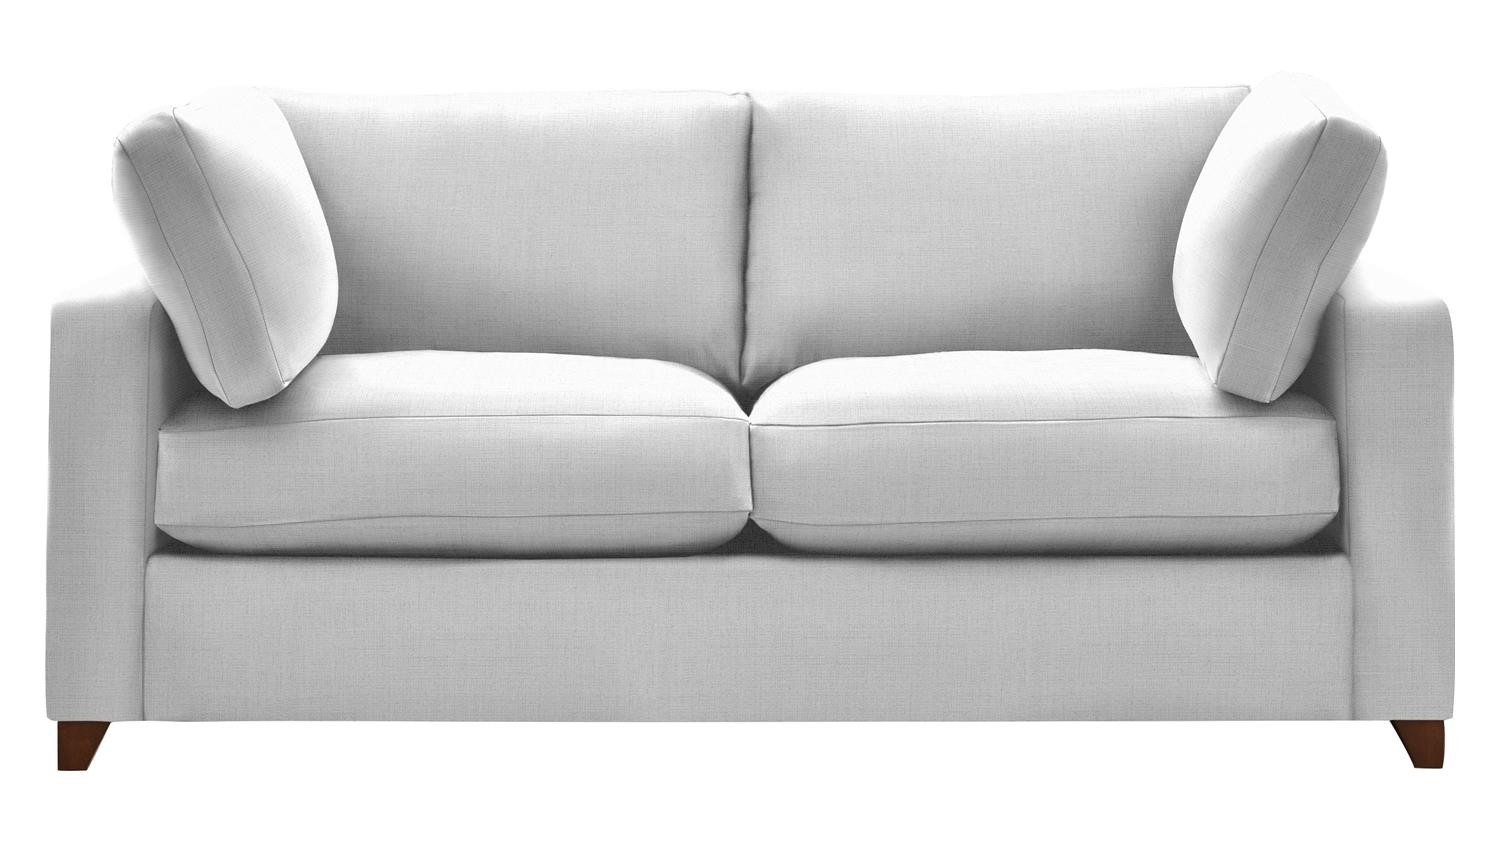 The Somerton 4 Seater Sofa Bed